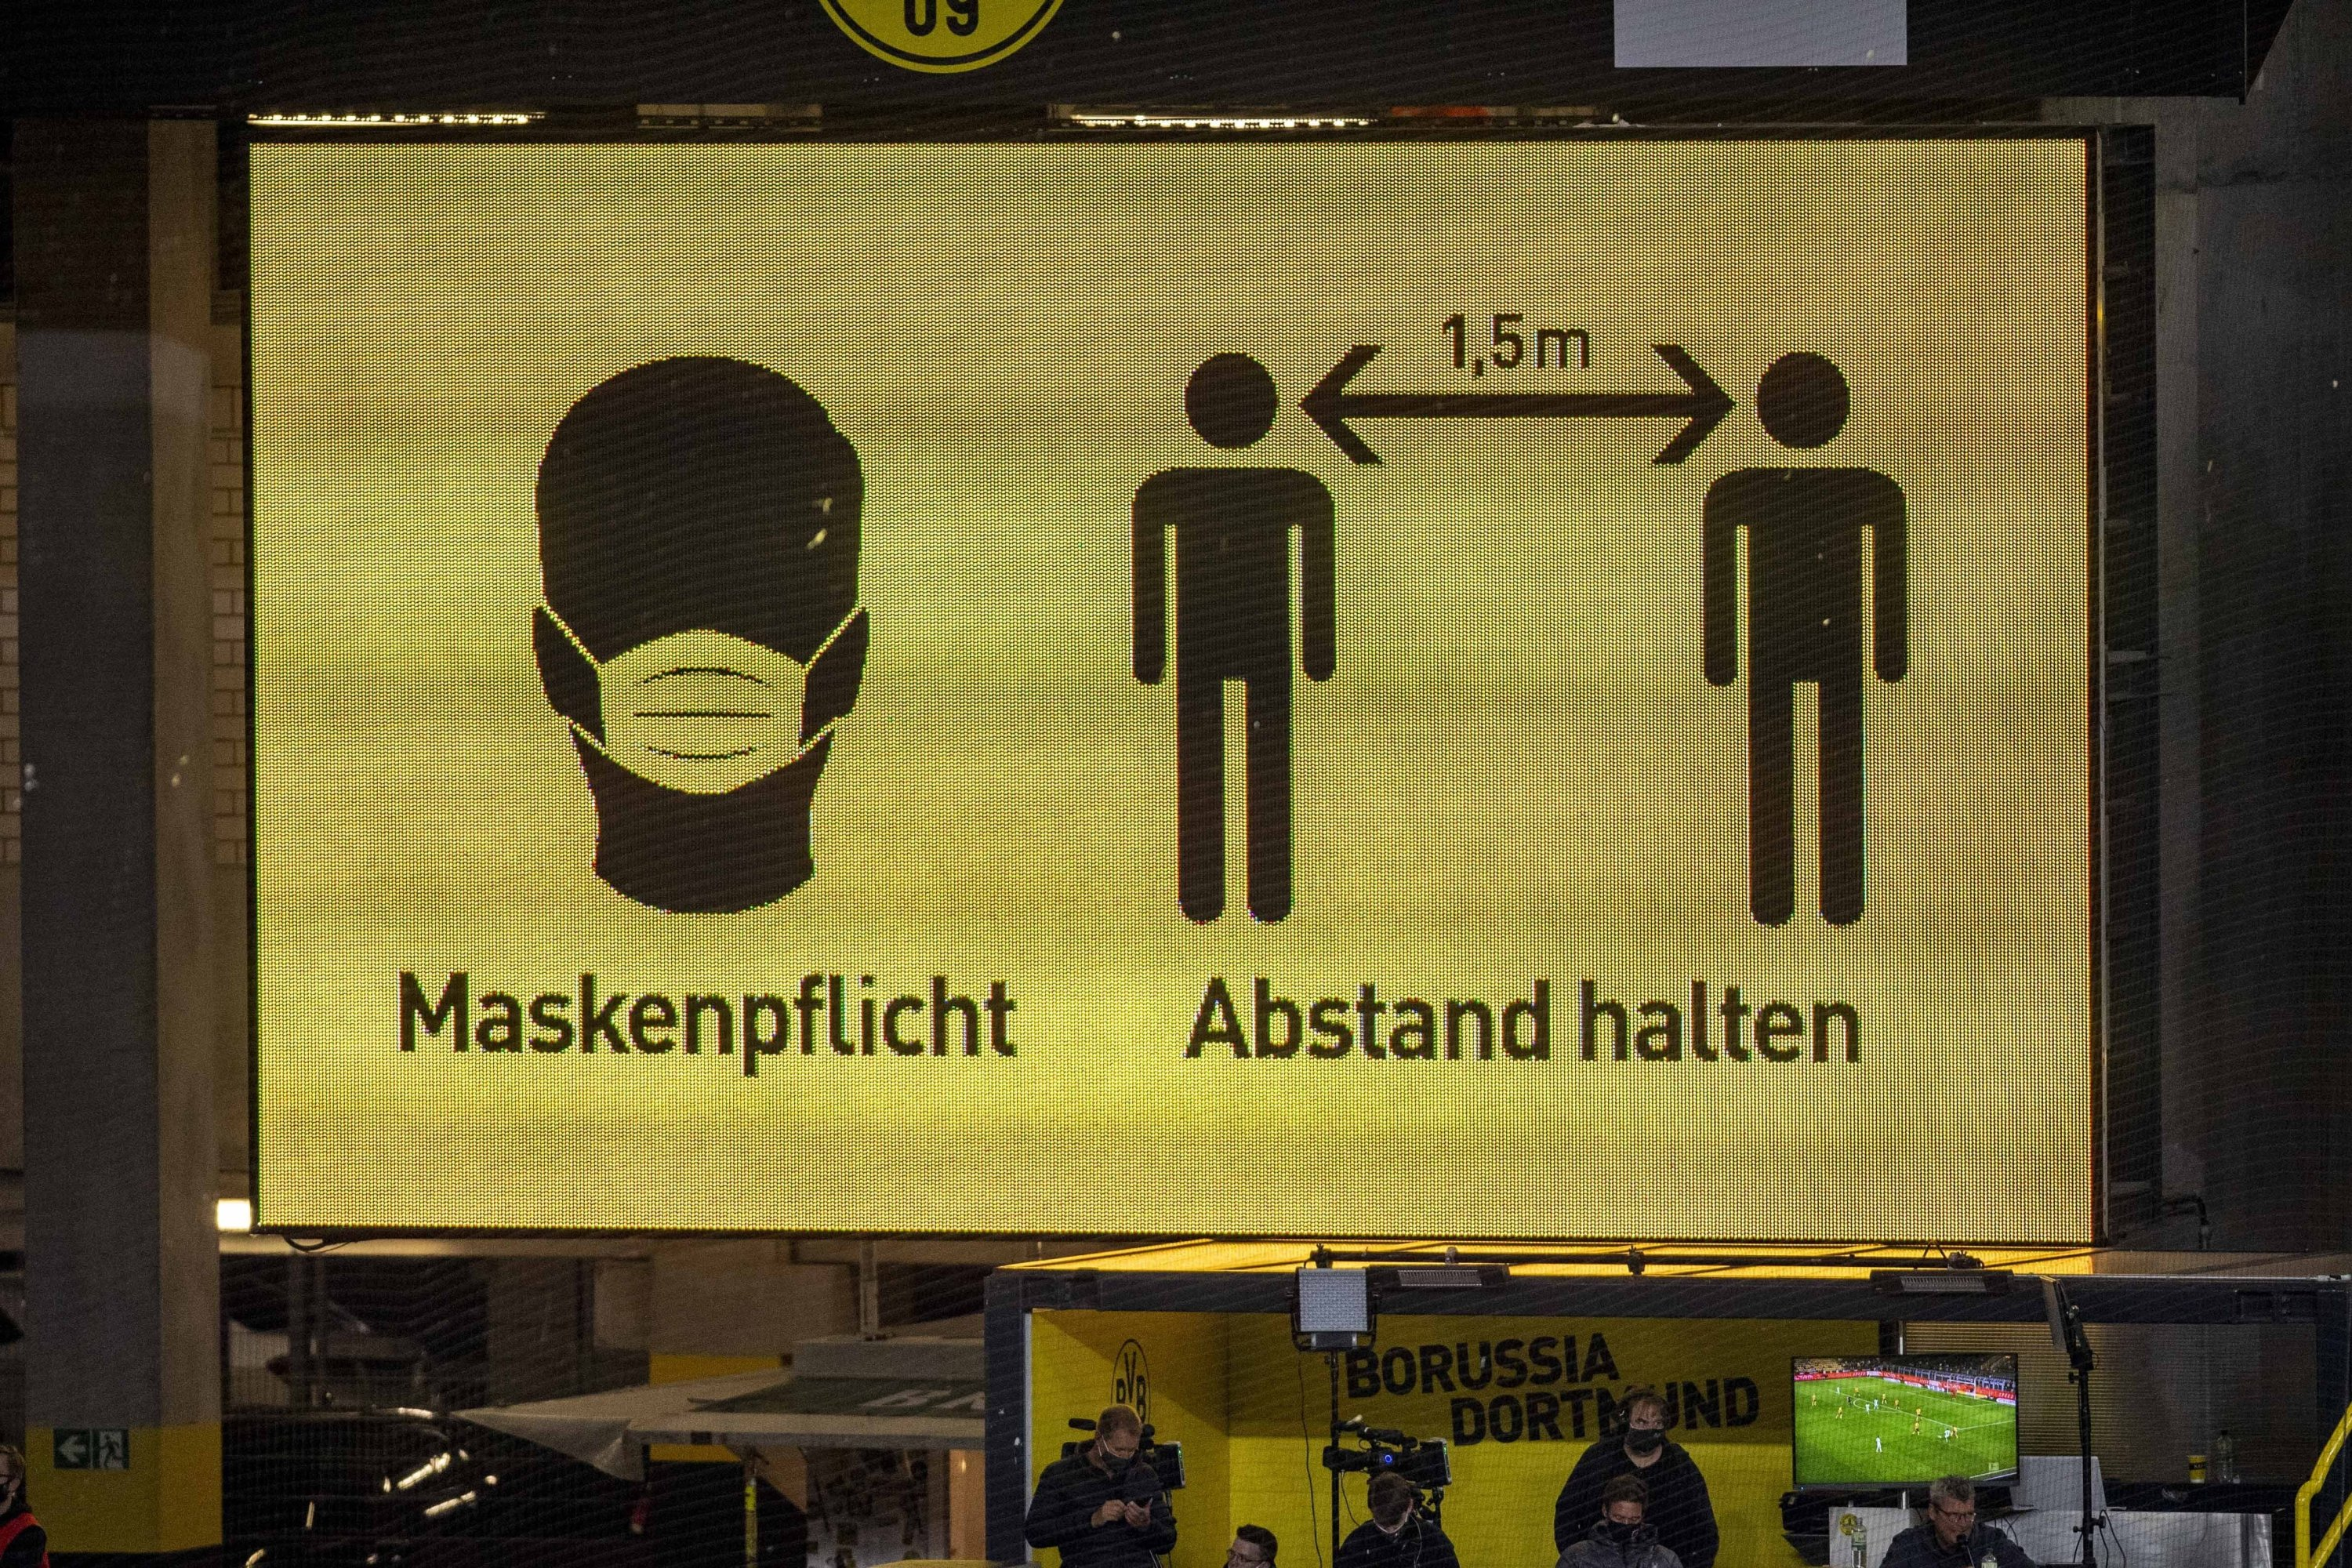 The scoreboard at Signal Iduna Park in Dortmund Nordrhein Westfalen indicates that masks are compulsory and that you must keep your distance, Sept. 19, 2020. (via REUTERS)